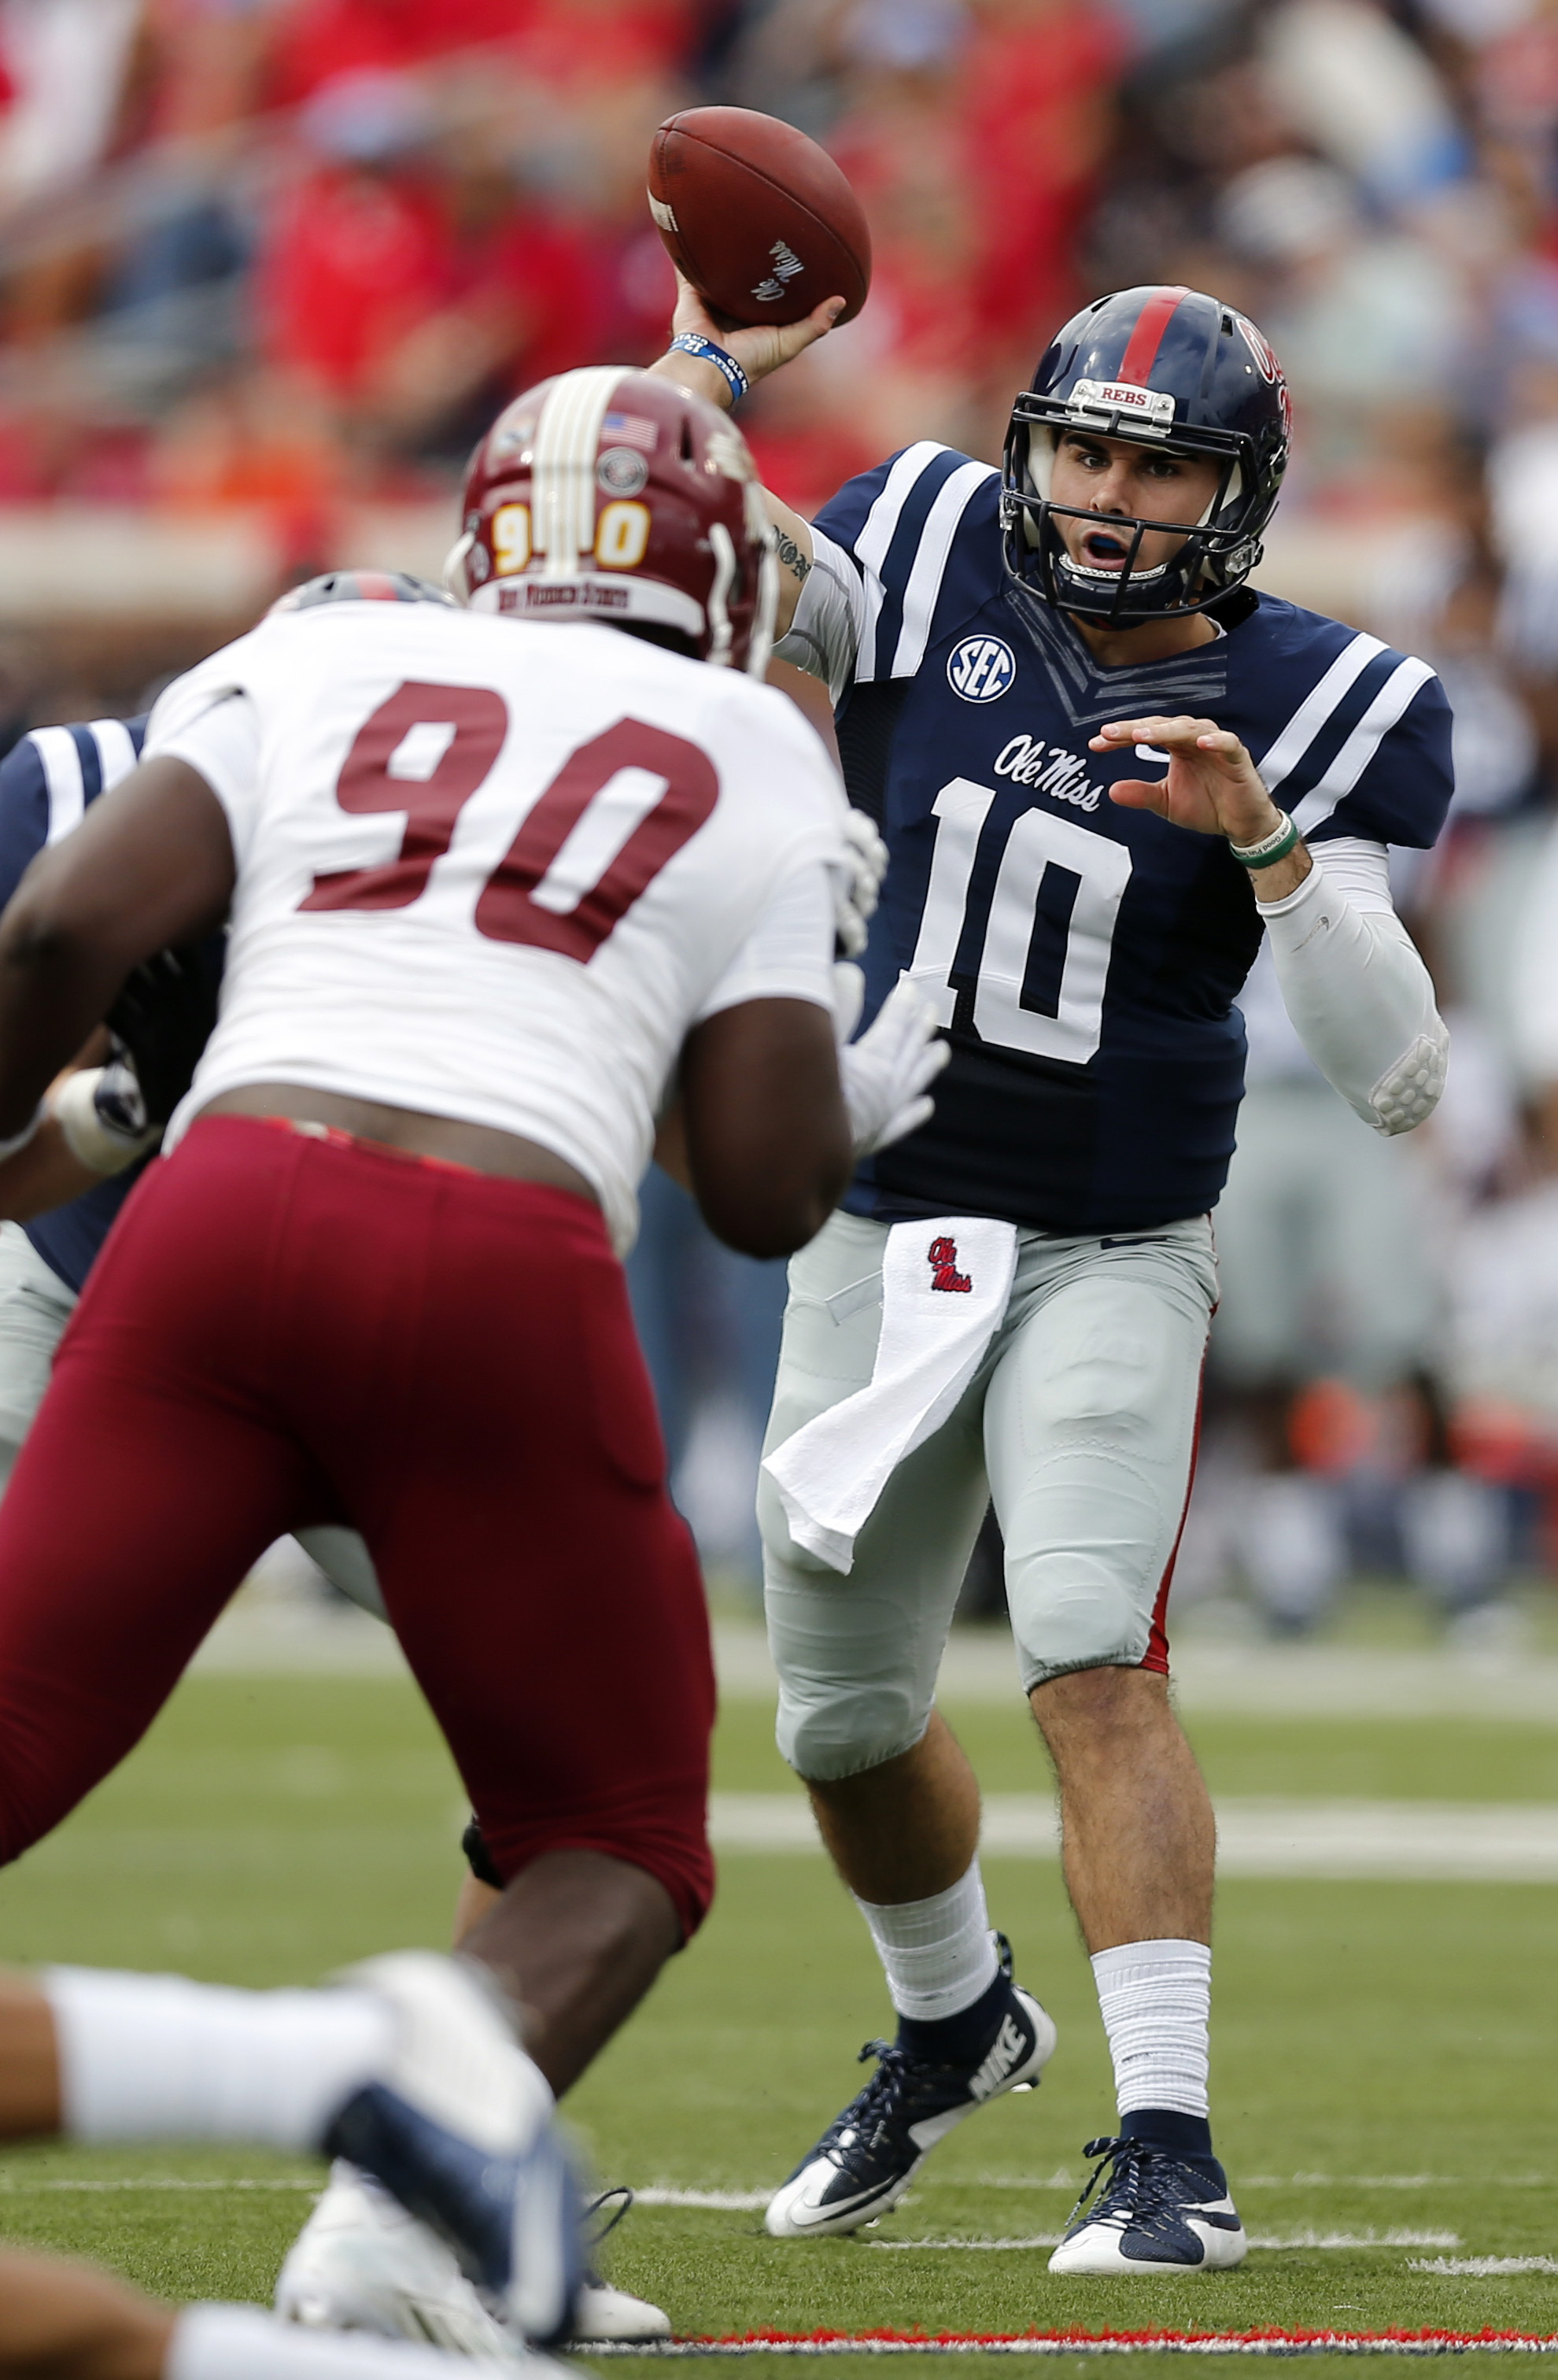 Mississippi quarterback Chad Kelly (10) passes against New Mexico State defensive lineman Kourtland Busby (90) during the first half of an NCAA college football game in Oxford, Miss., Saturday, Oct. 10, 2015. (AP Photo/Rogelio V. Solis)